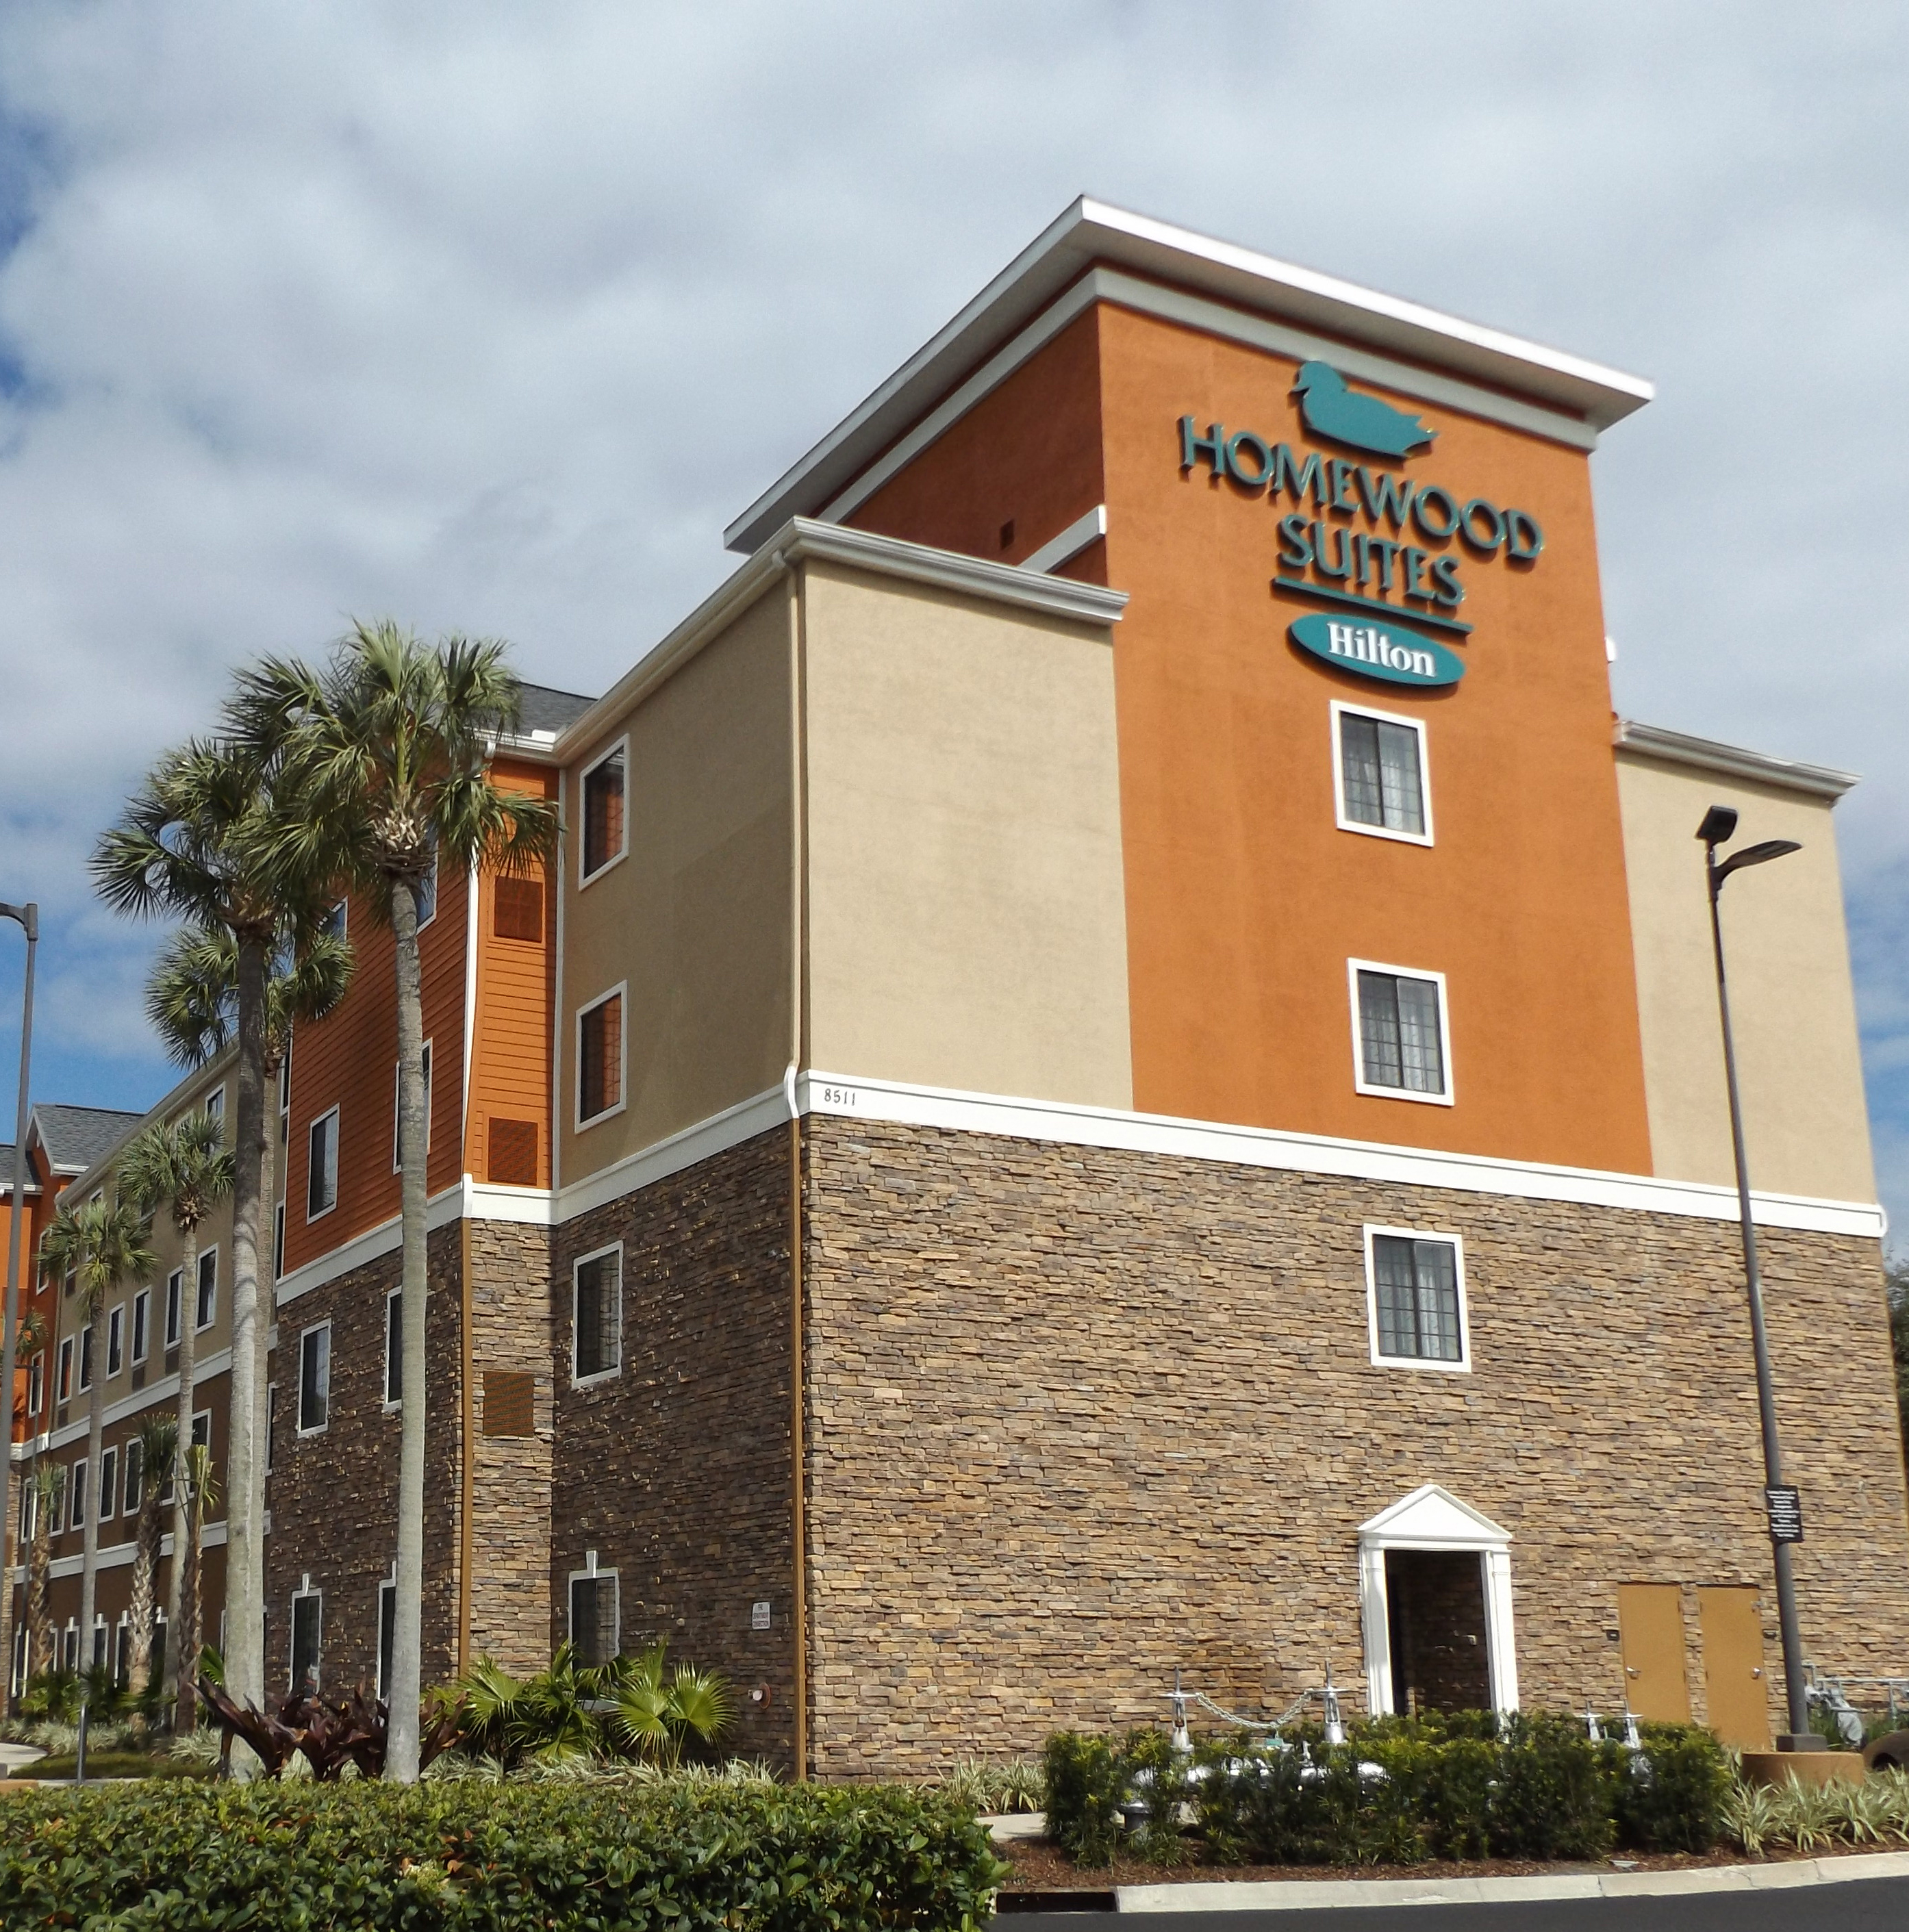 Homewood Suites by Hilton – Hospitality Net